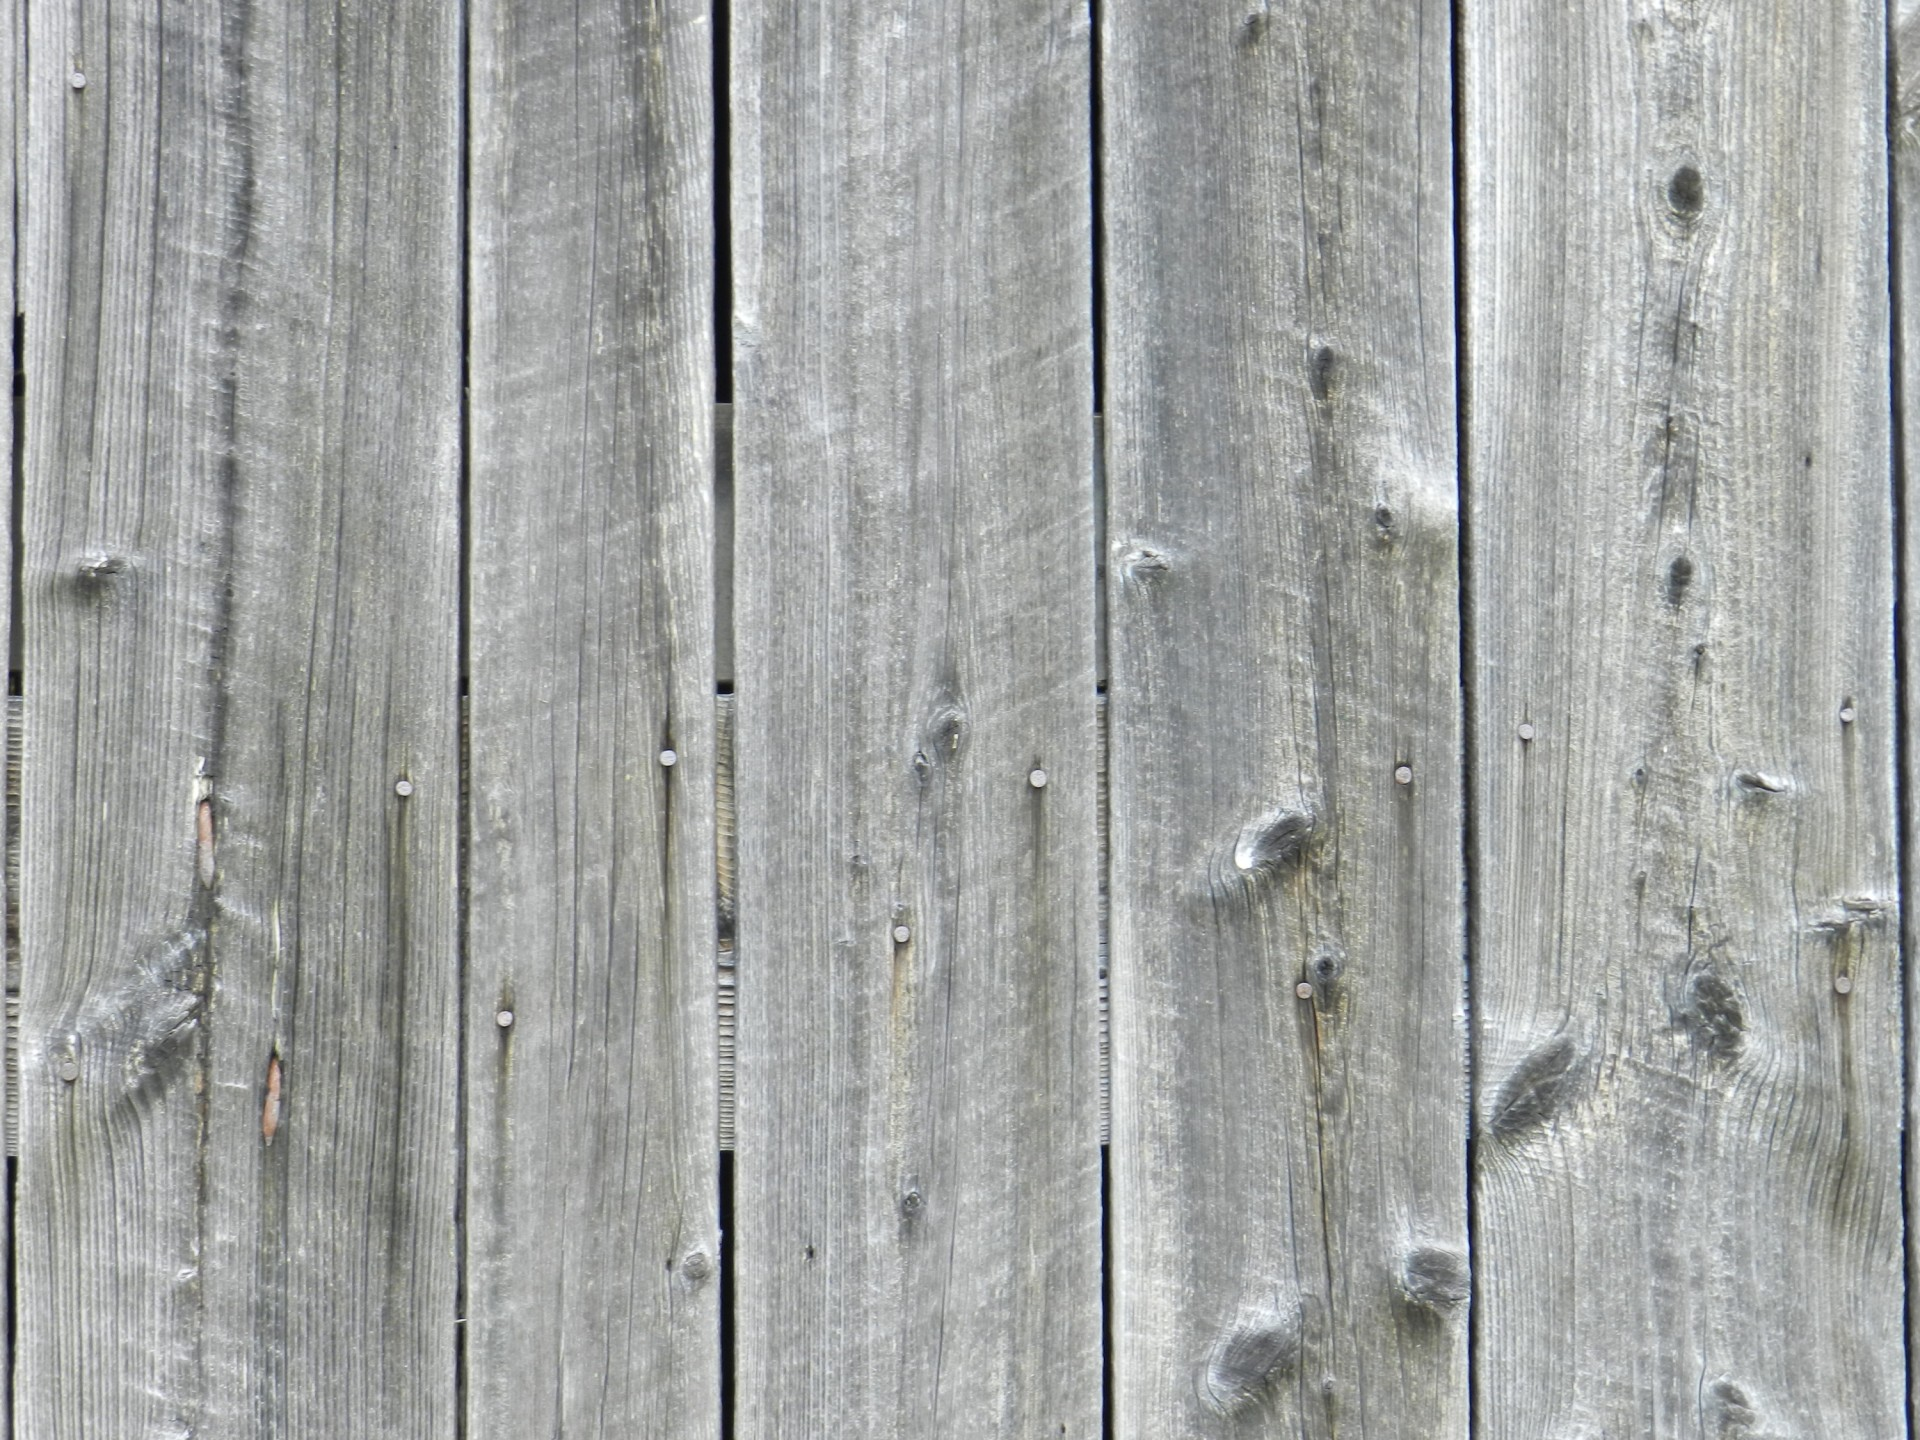 Barn Wood 8 Stock Photo HD   Public Domain Pictures 1920x1440